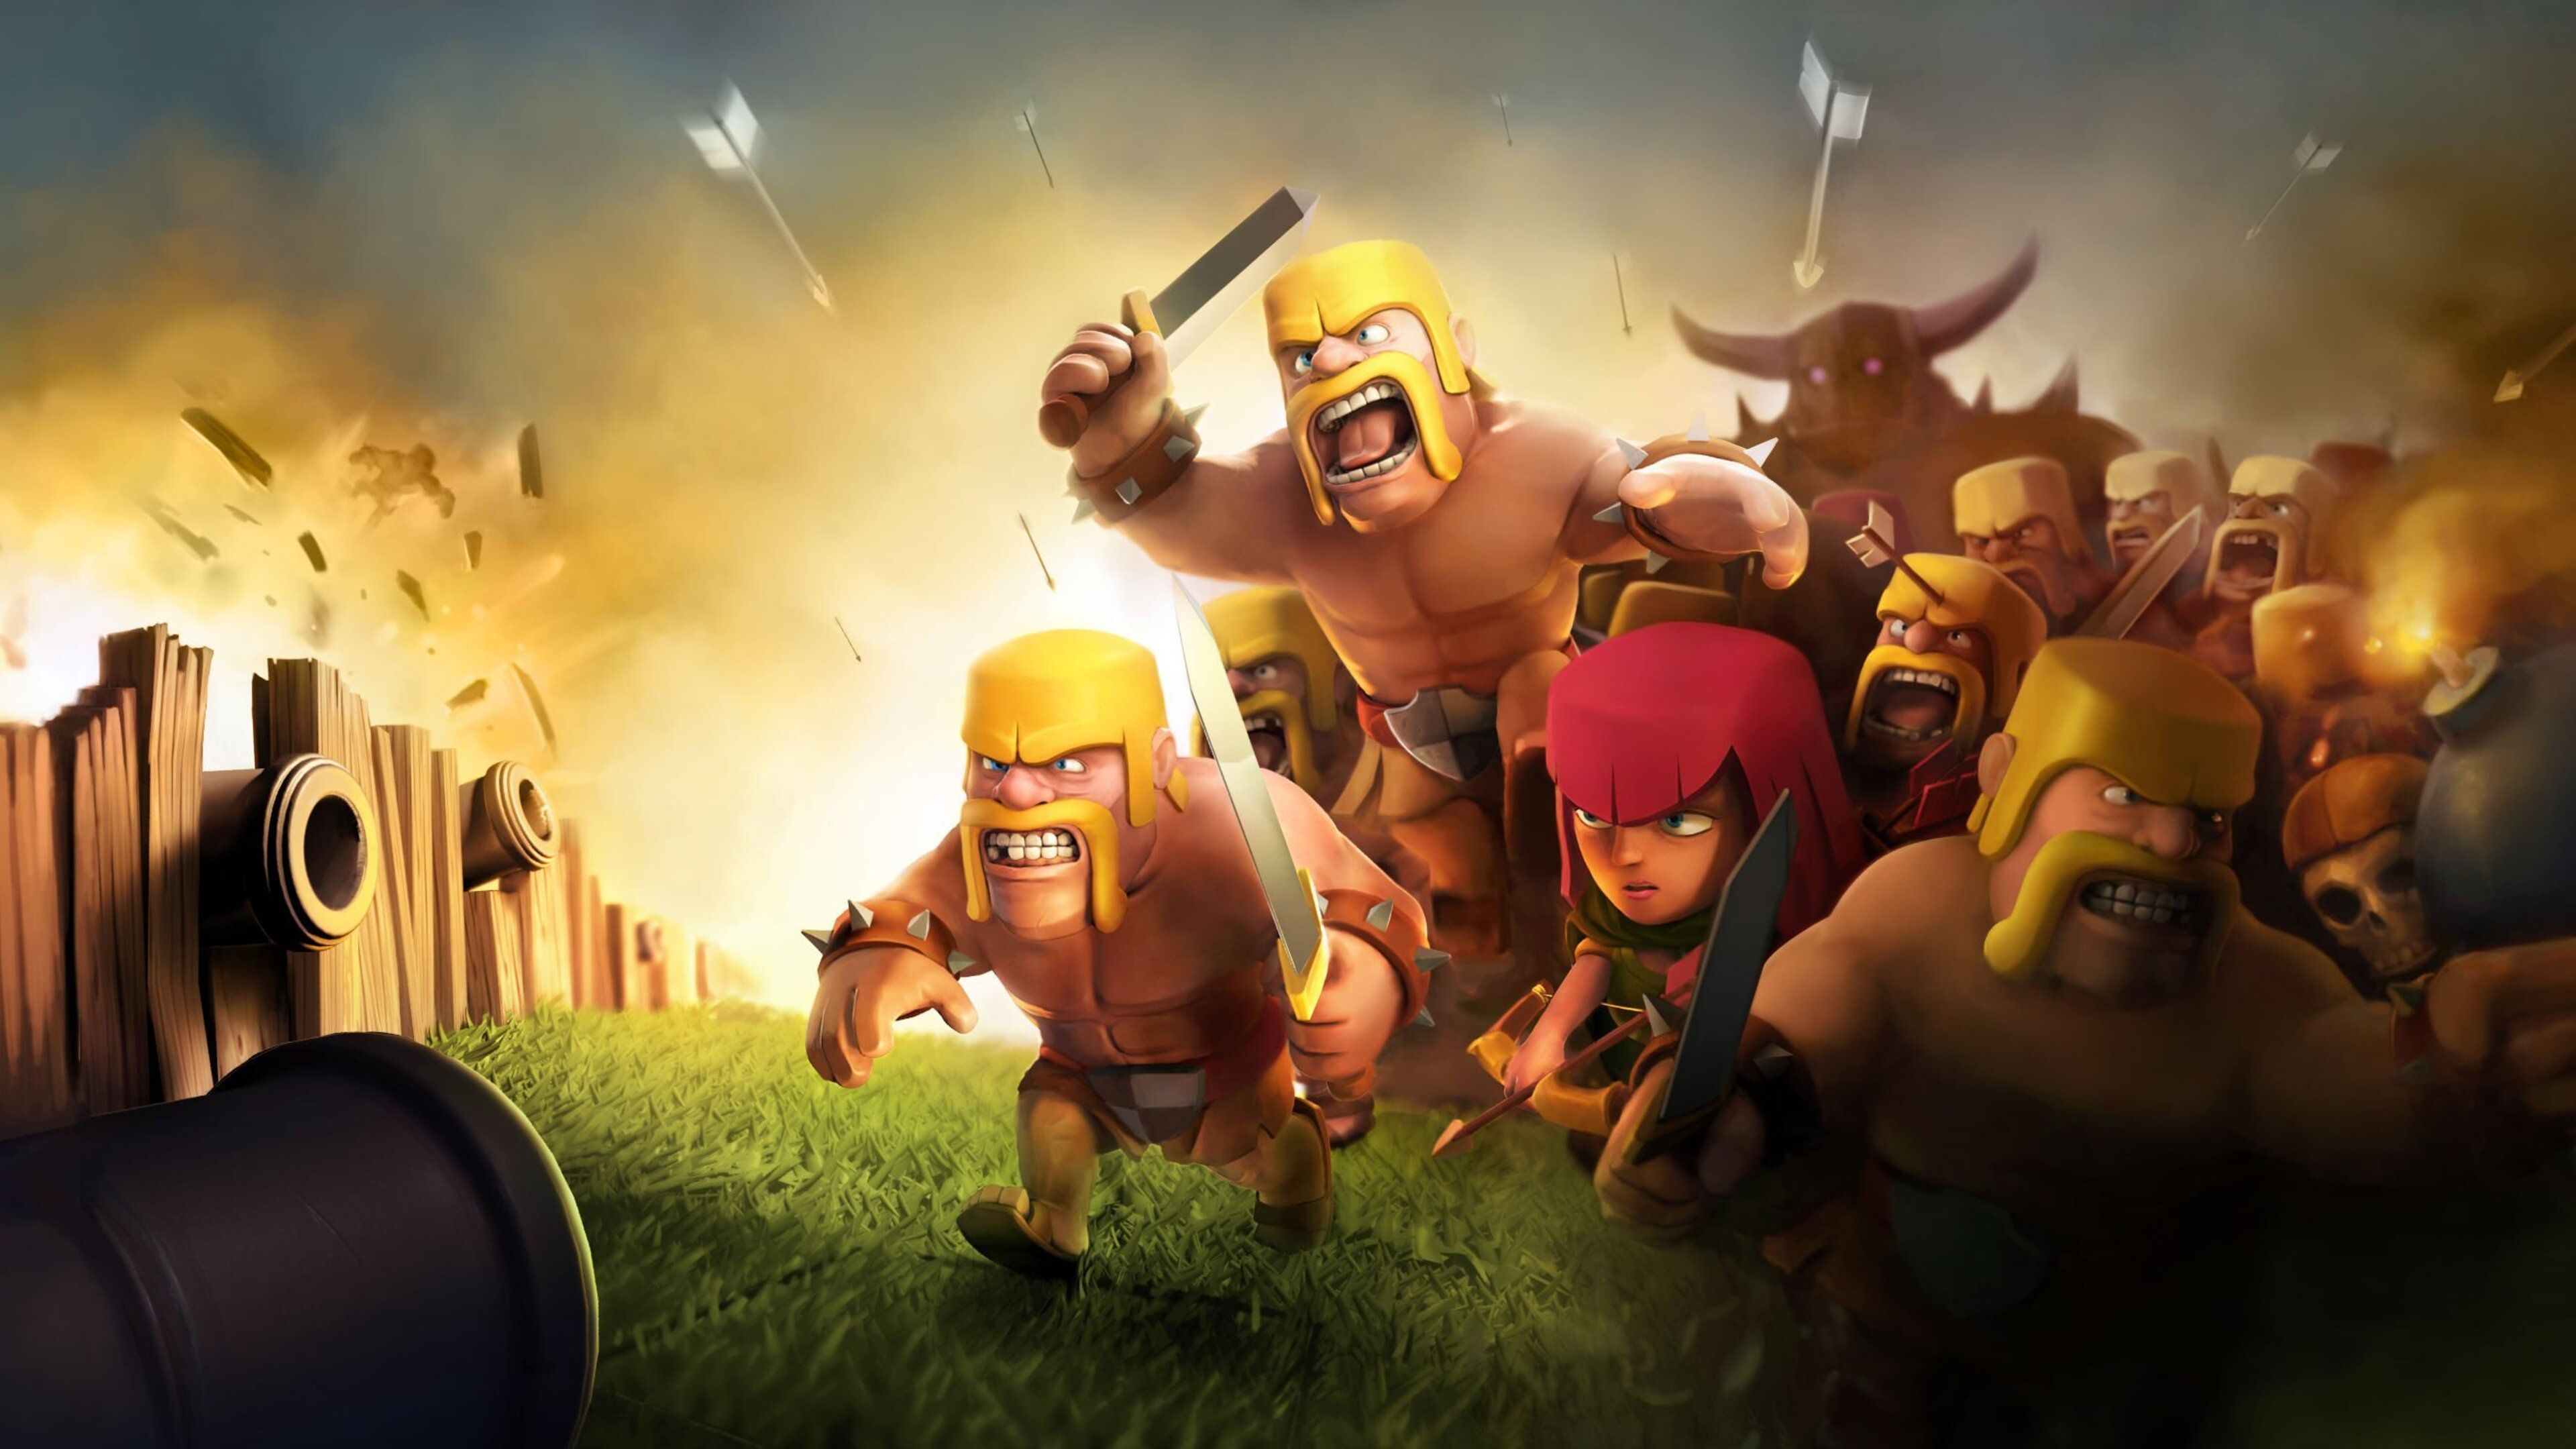 Cute Wallpapers  3840x2160 Clash Of Clans Hd 4k Hd 4k Wallpapers Images